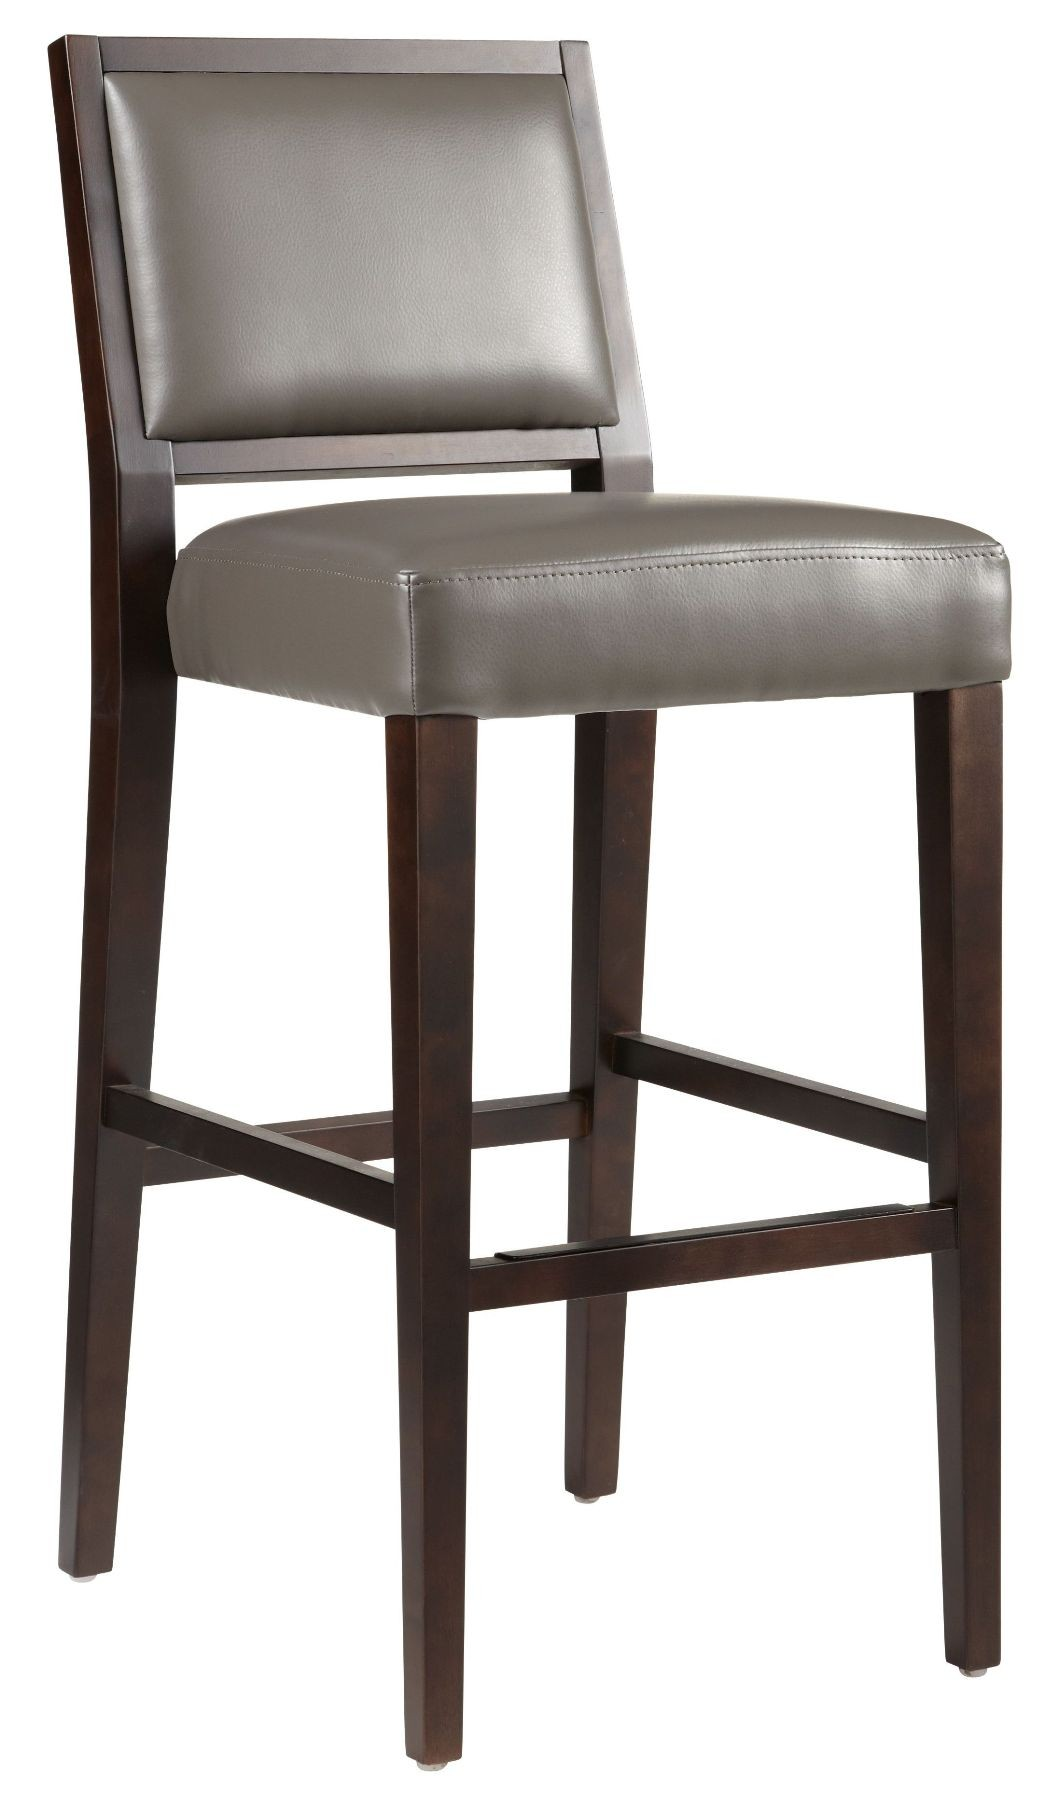 grey kitchen chairs fluffy stool chair ebay citizen barstool from sunpan 49058 coleman furniture